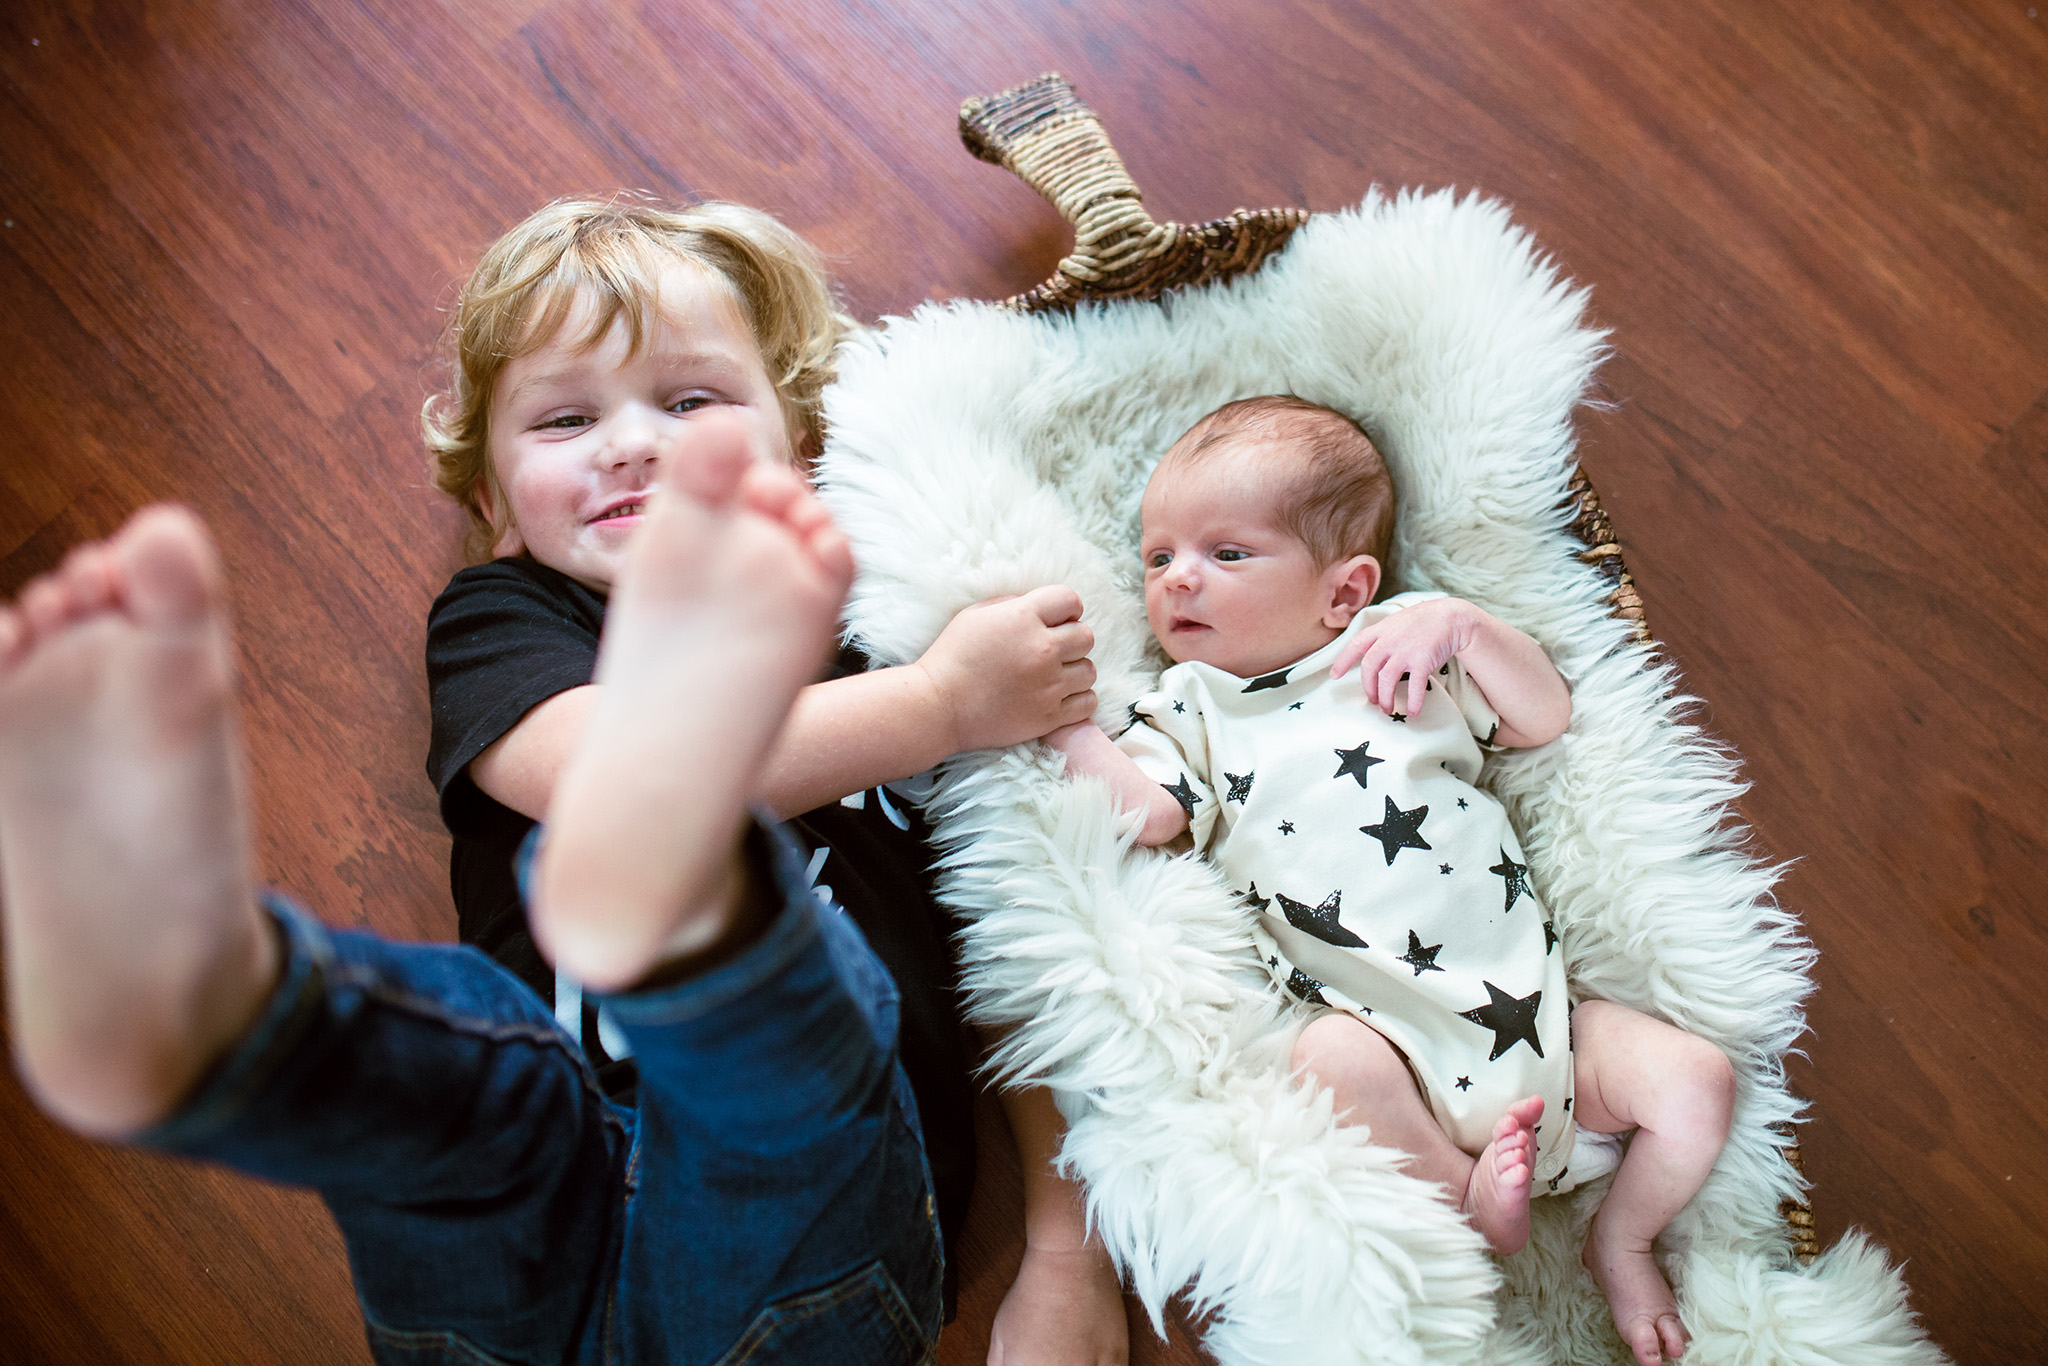 October 6: I got to do newborn photos for my friends James and Devon's second son. This was my favorite image. Is there anything better than brothers who are buddies from the get-go?